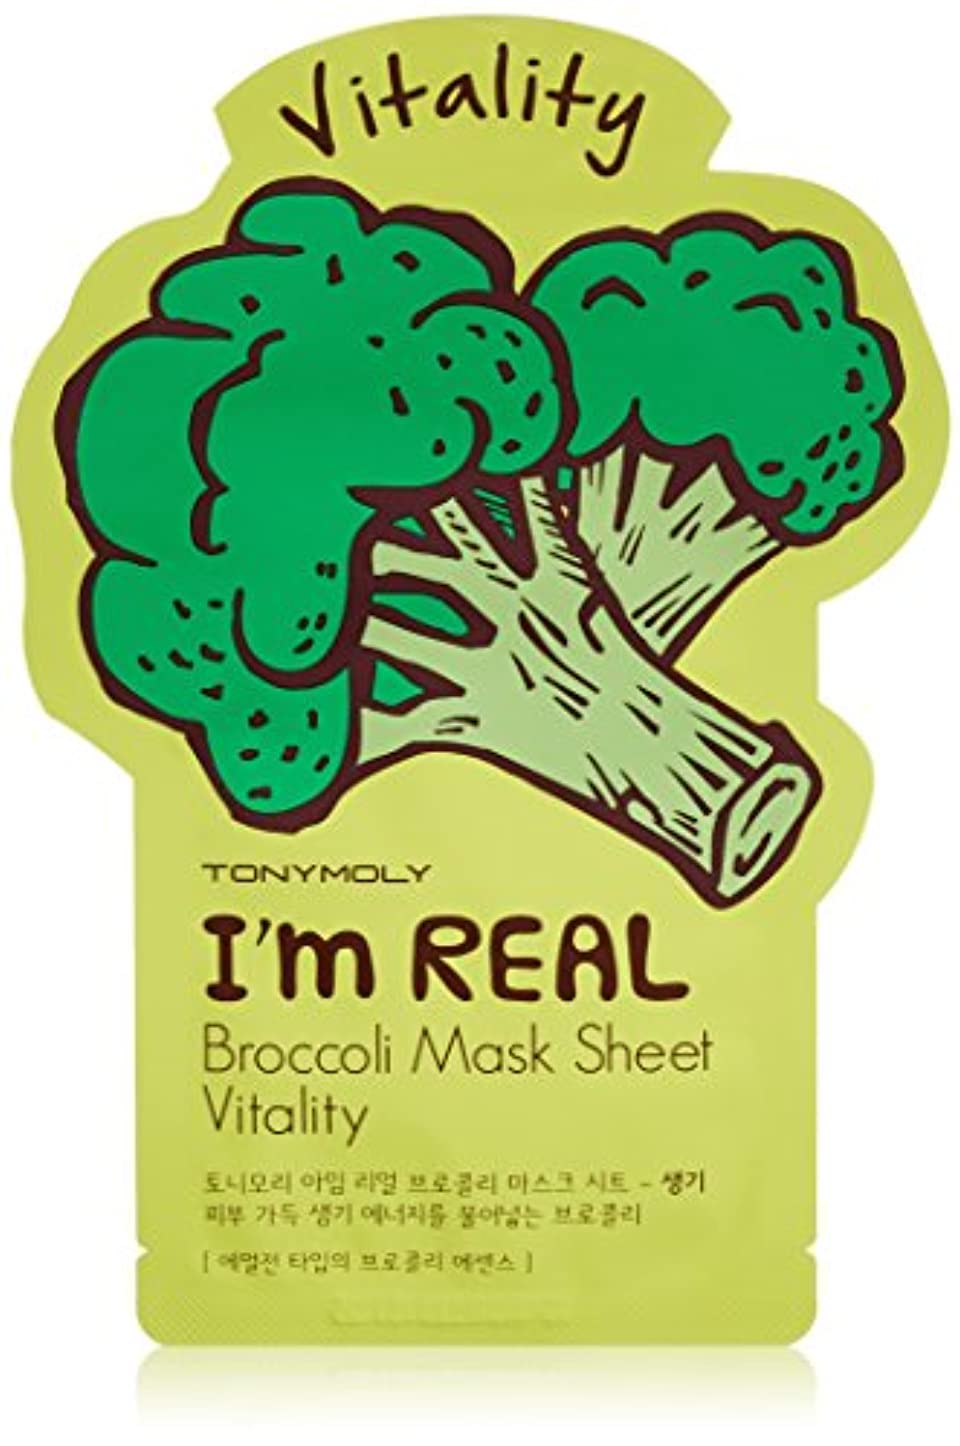 トニーモリー I'm Real Mask Sheet - Broccoli - Vitality 10x21ml/0.71oz